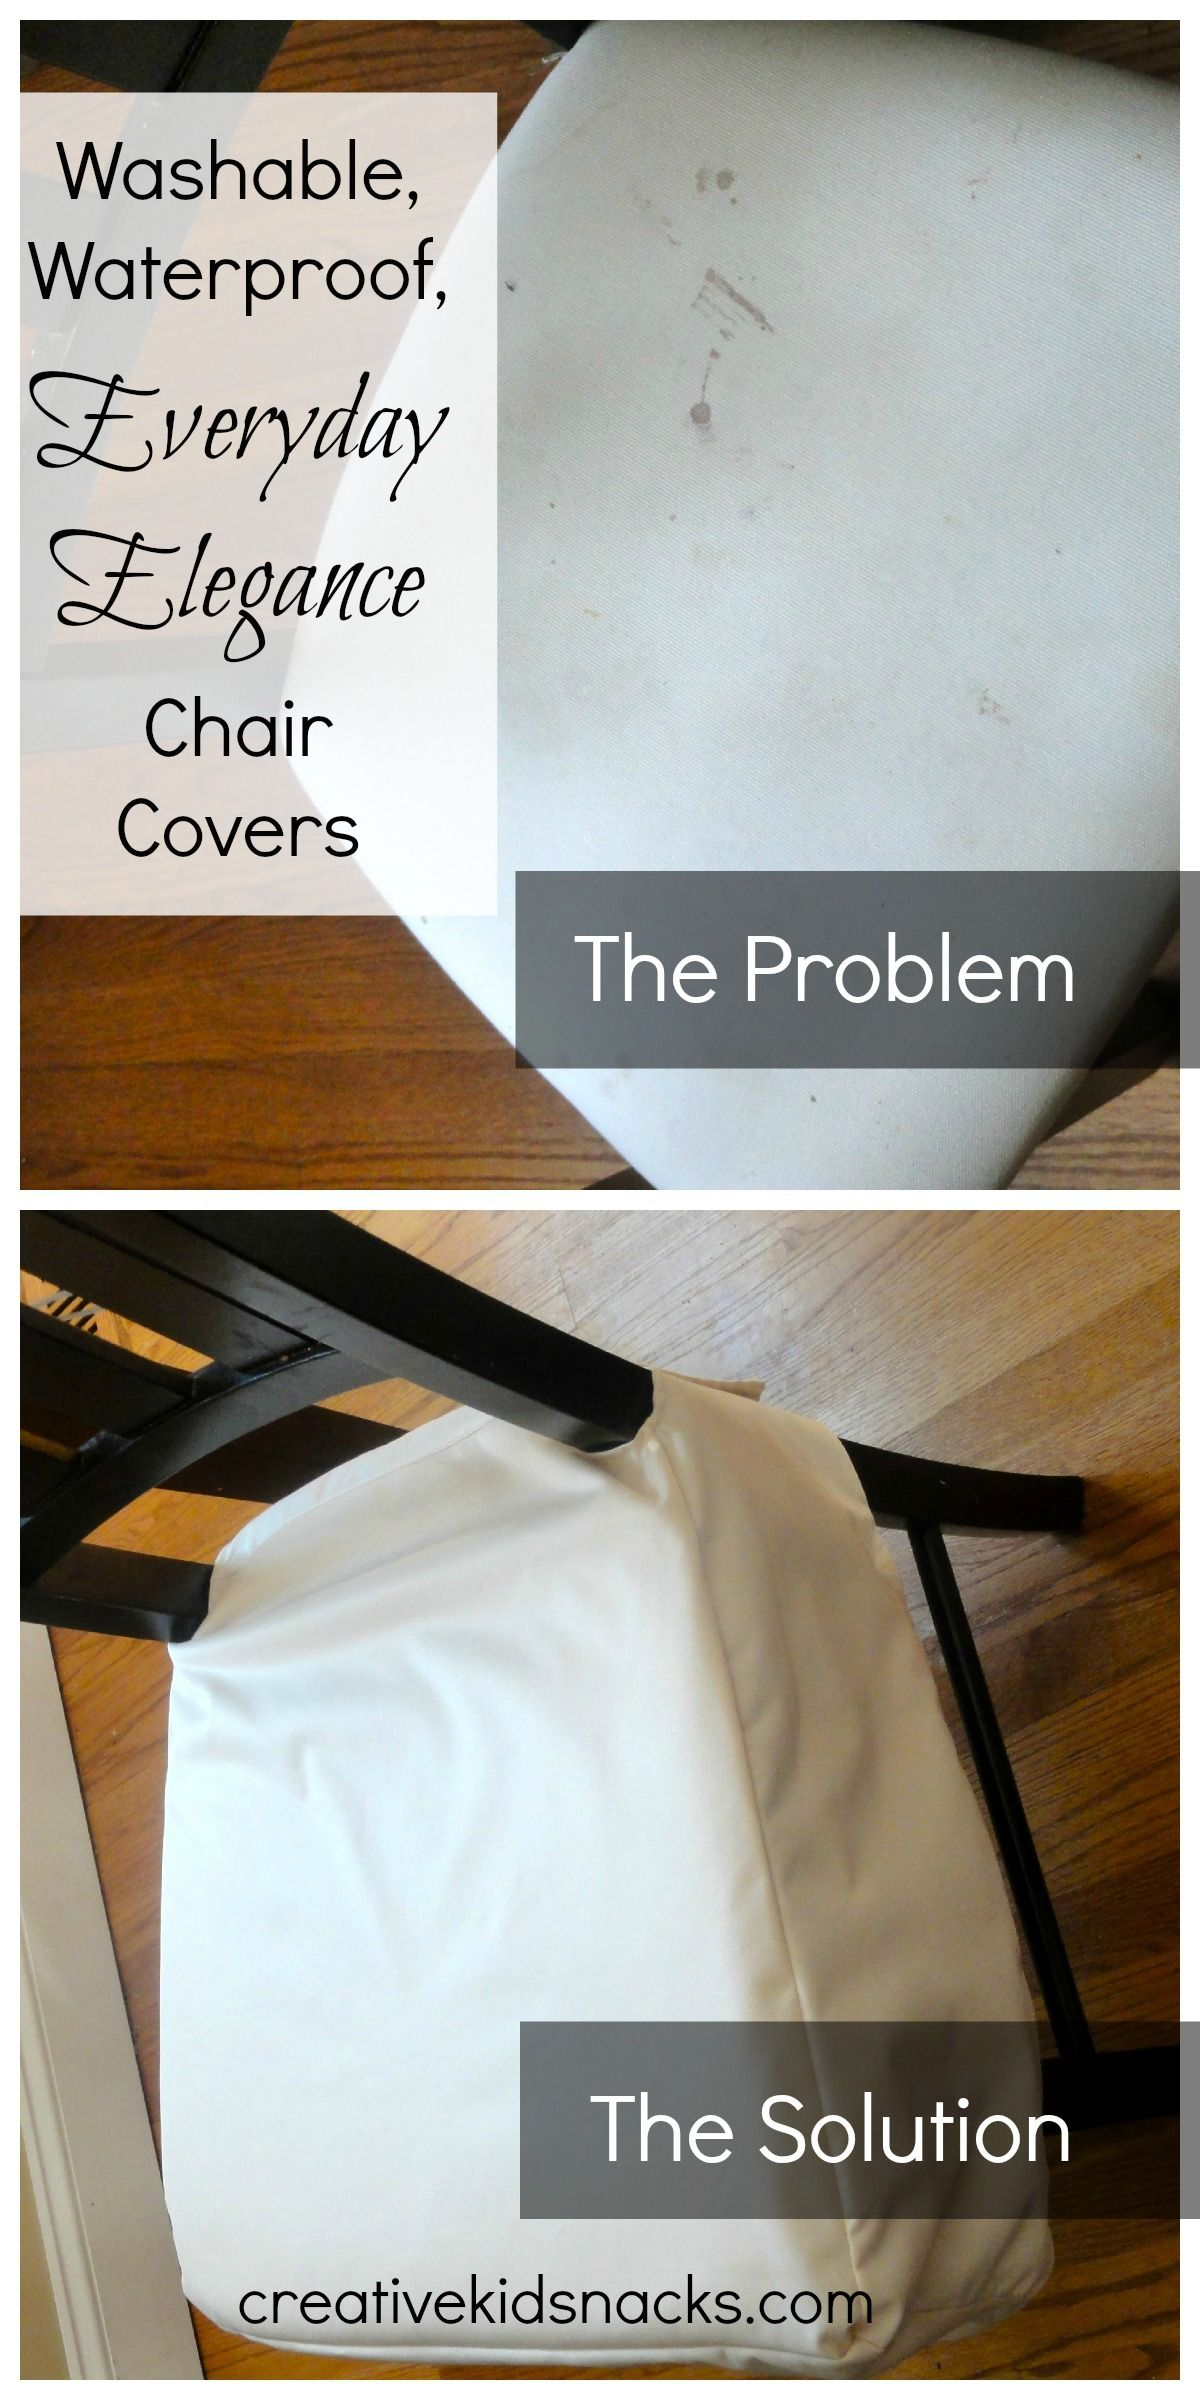 Finally A Waterproof Washable Chair Cover That Is Actually Comfortable To Sit On Perfect For All Those Spills And Stains The Kids Make